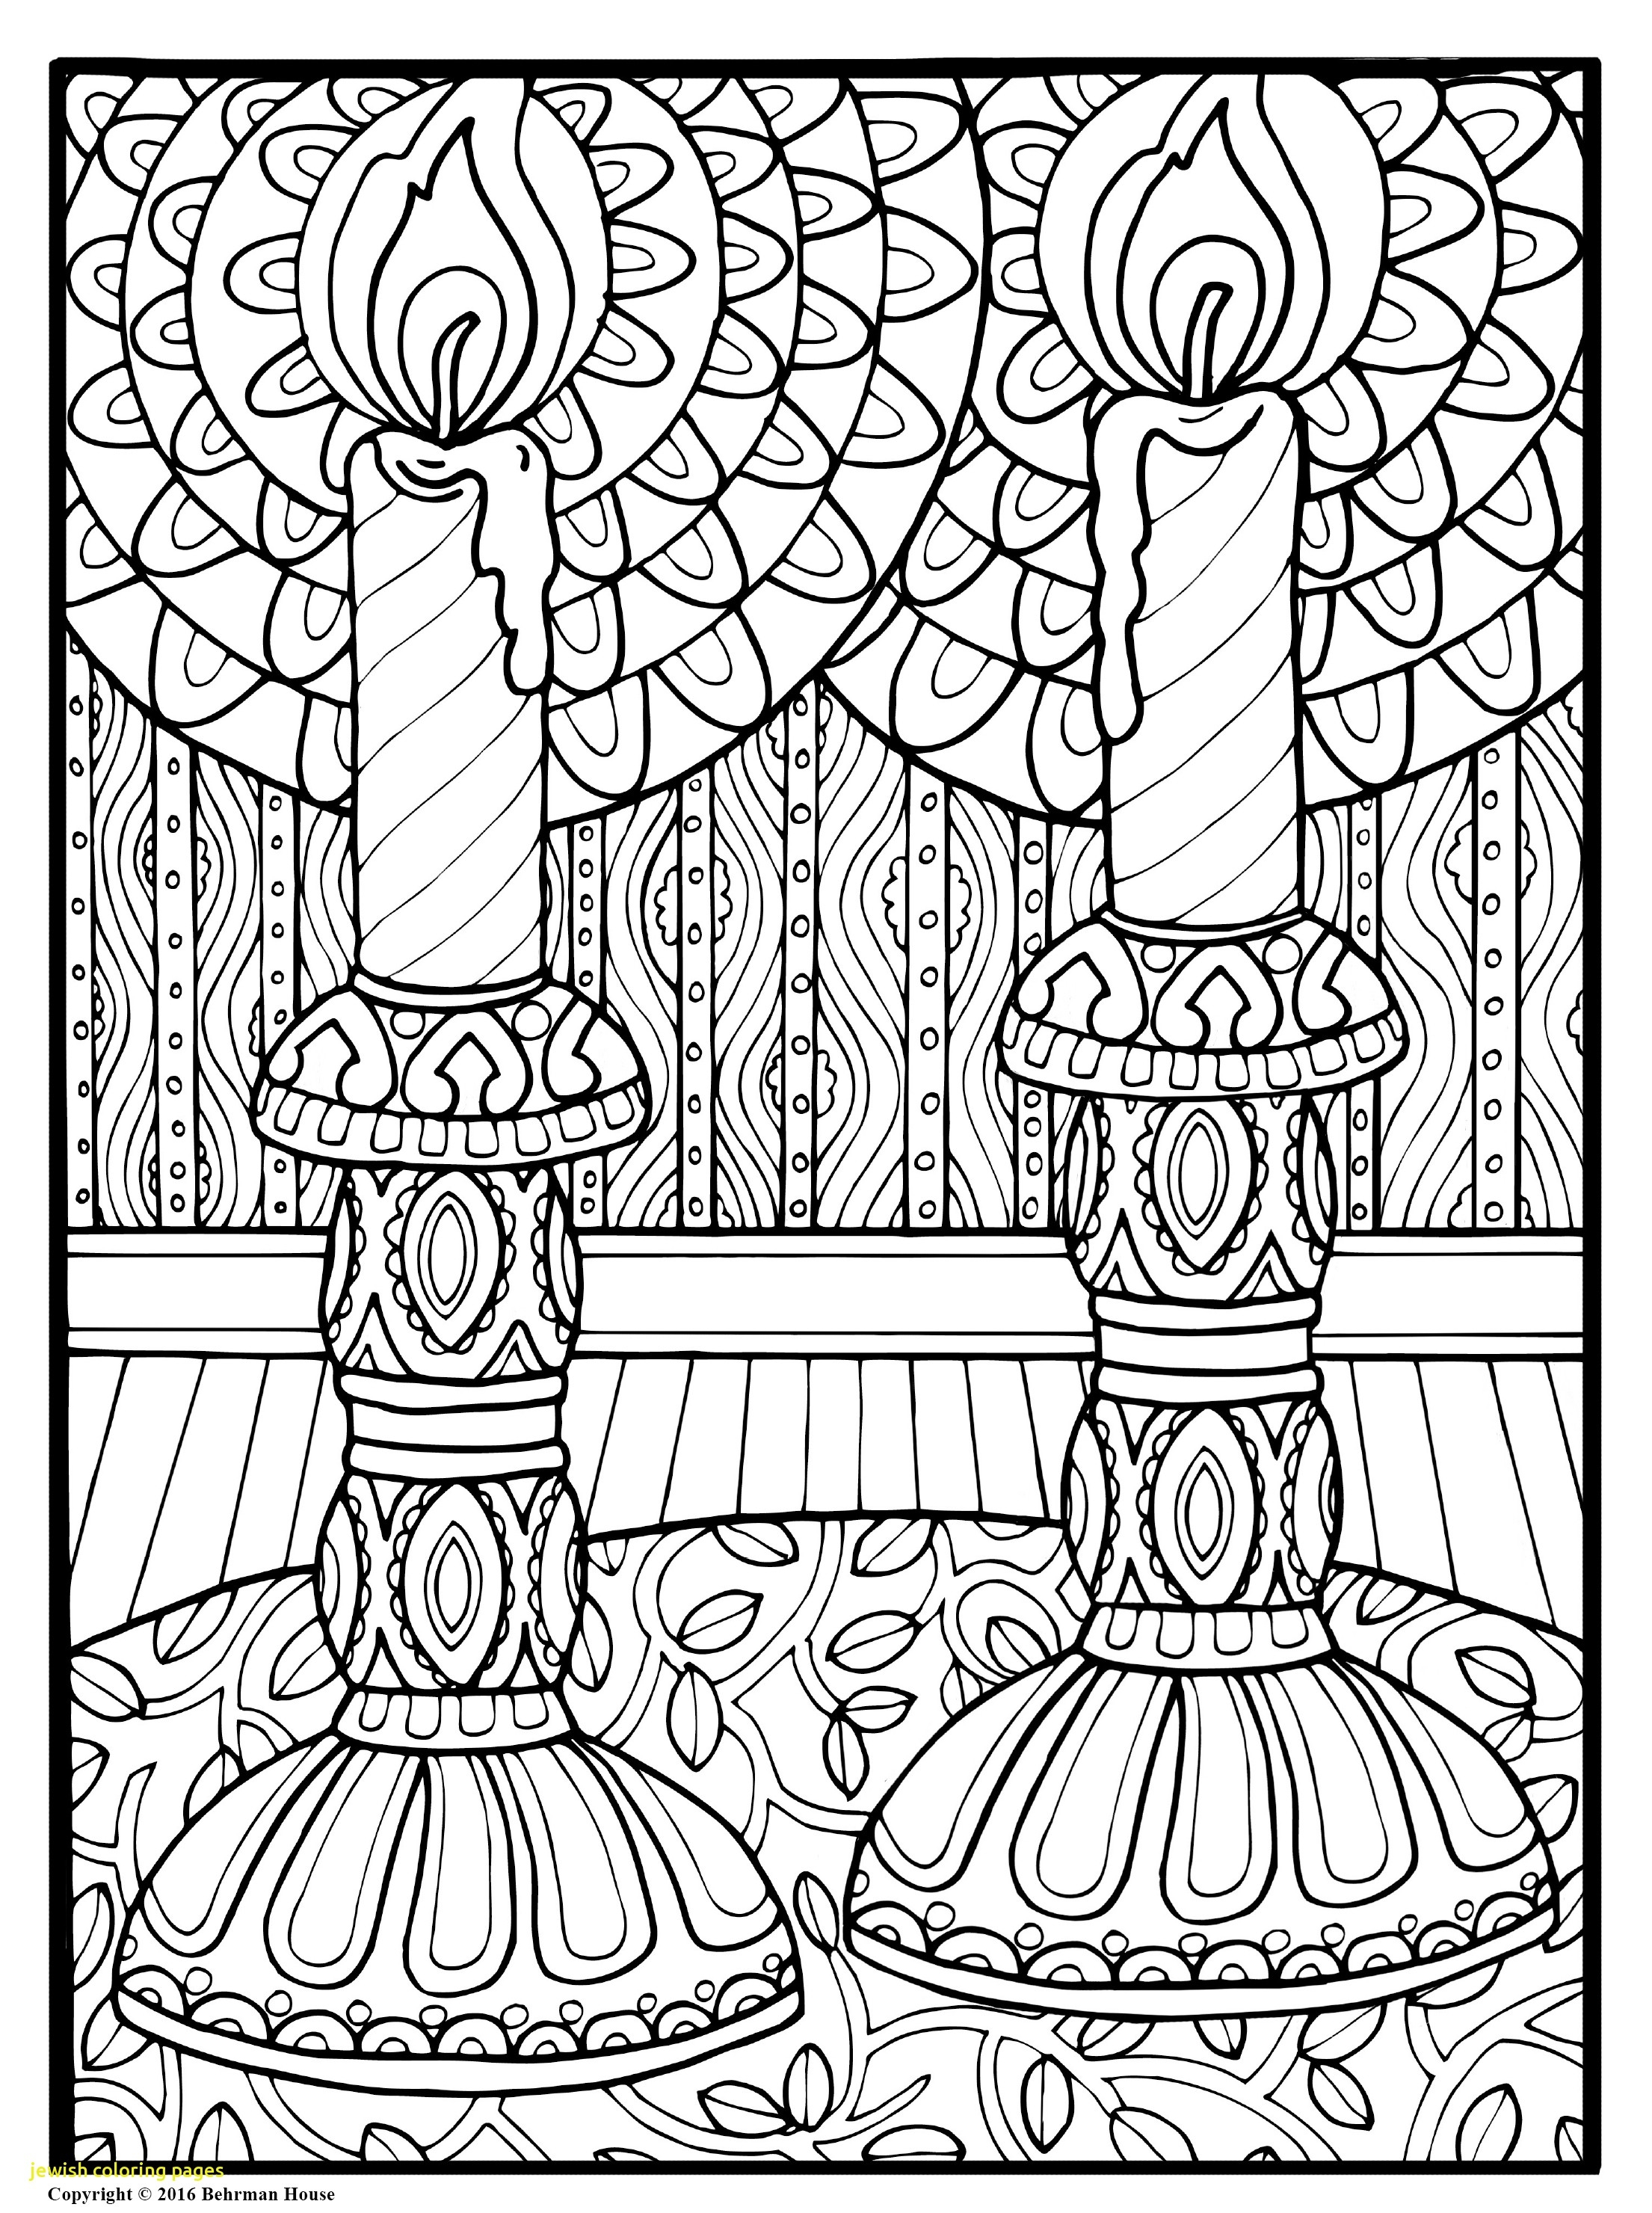 coloring book for adults souq thanksgiving doodle carre thanksgiving coloriages coloring for adults souq book